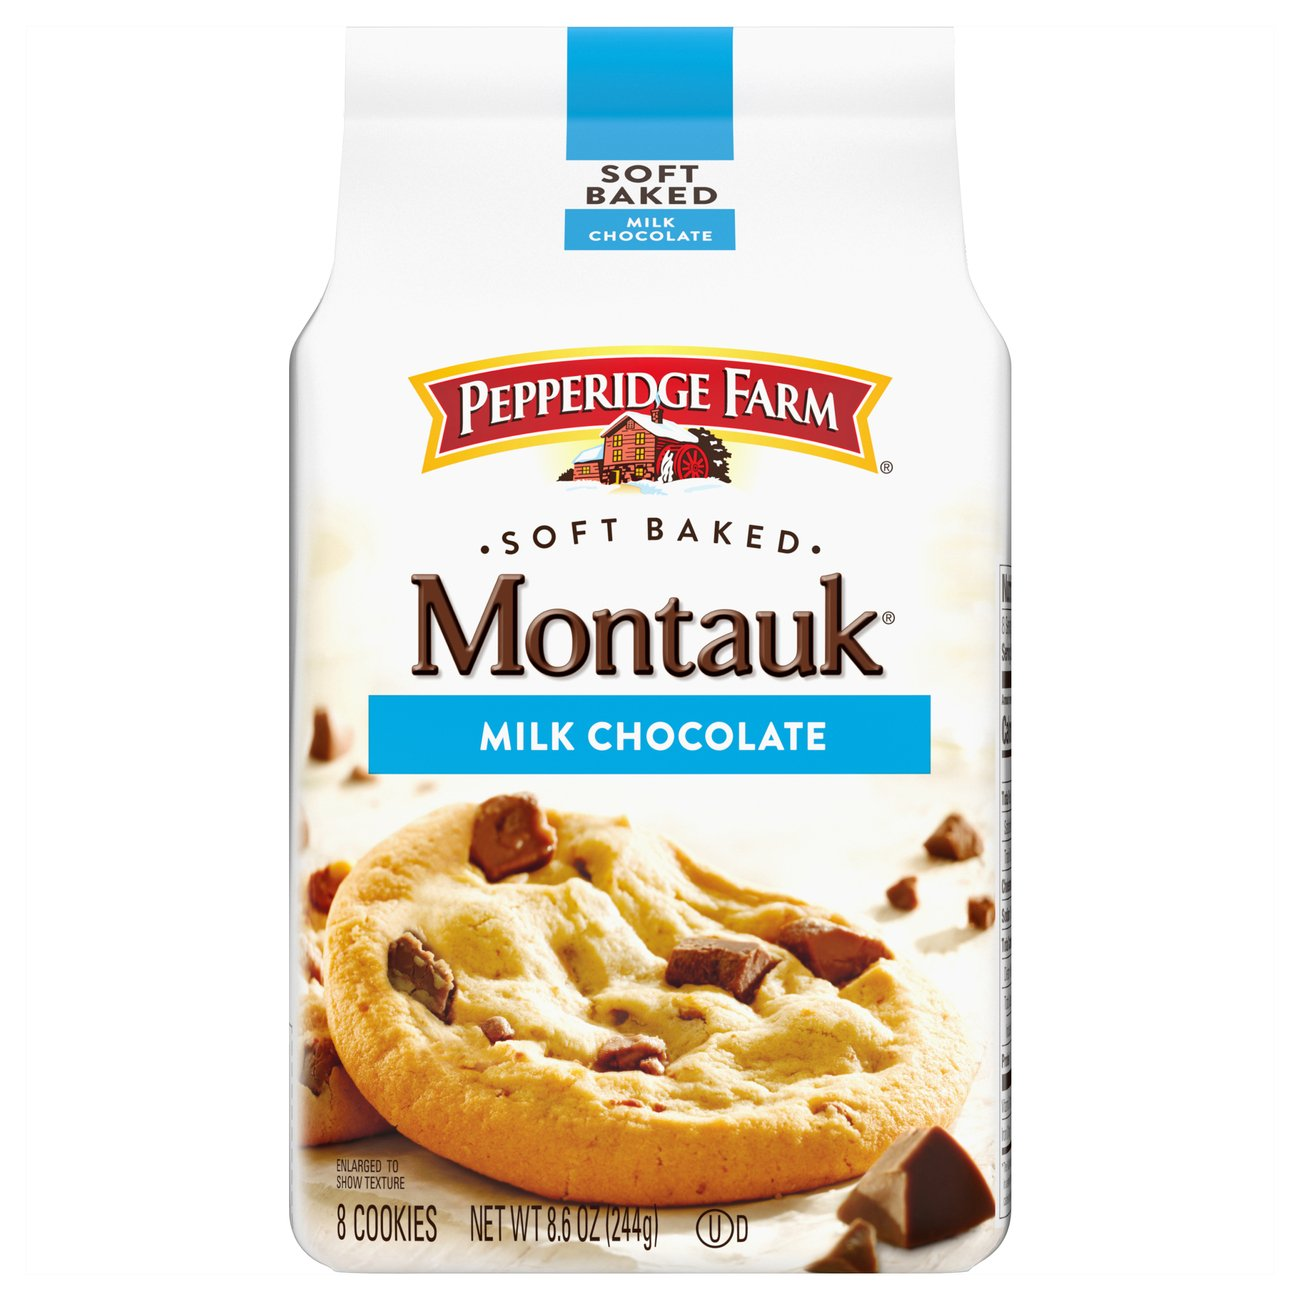 Pepperidge Farm Montauk Milk Chocolate Soft Baked Cookies Shop Cookies At H E B